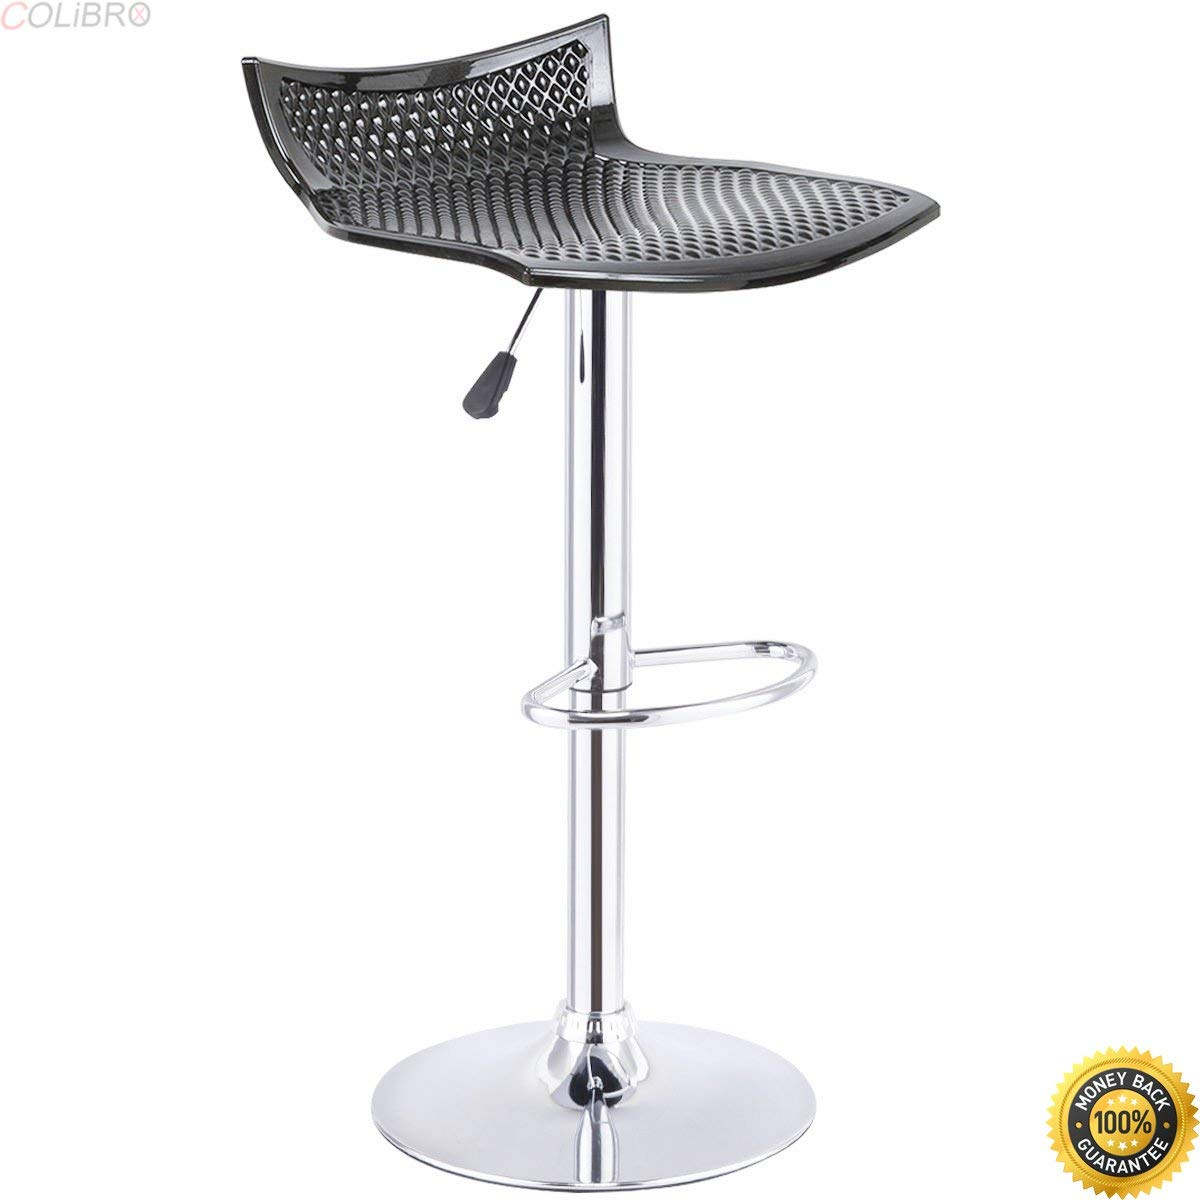 Enjoyable Cheap Kitchen Bar Stools For Sale Find Kitchen Bar Stools Ibusinesslaw Wood Chair Design Ideas Ibusinesslaworg